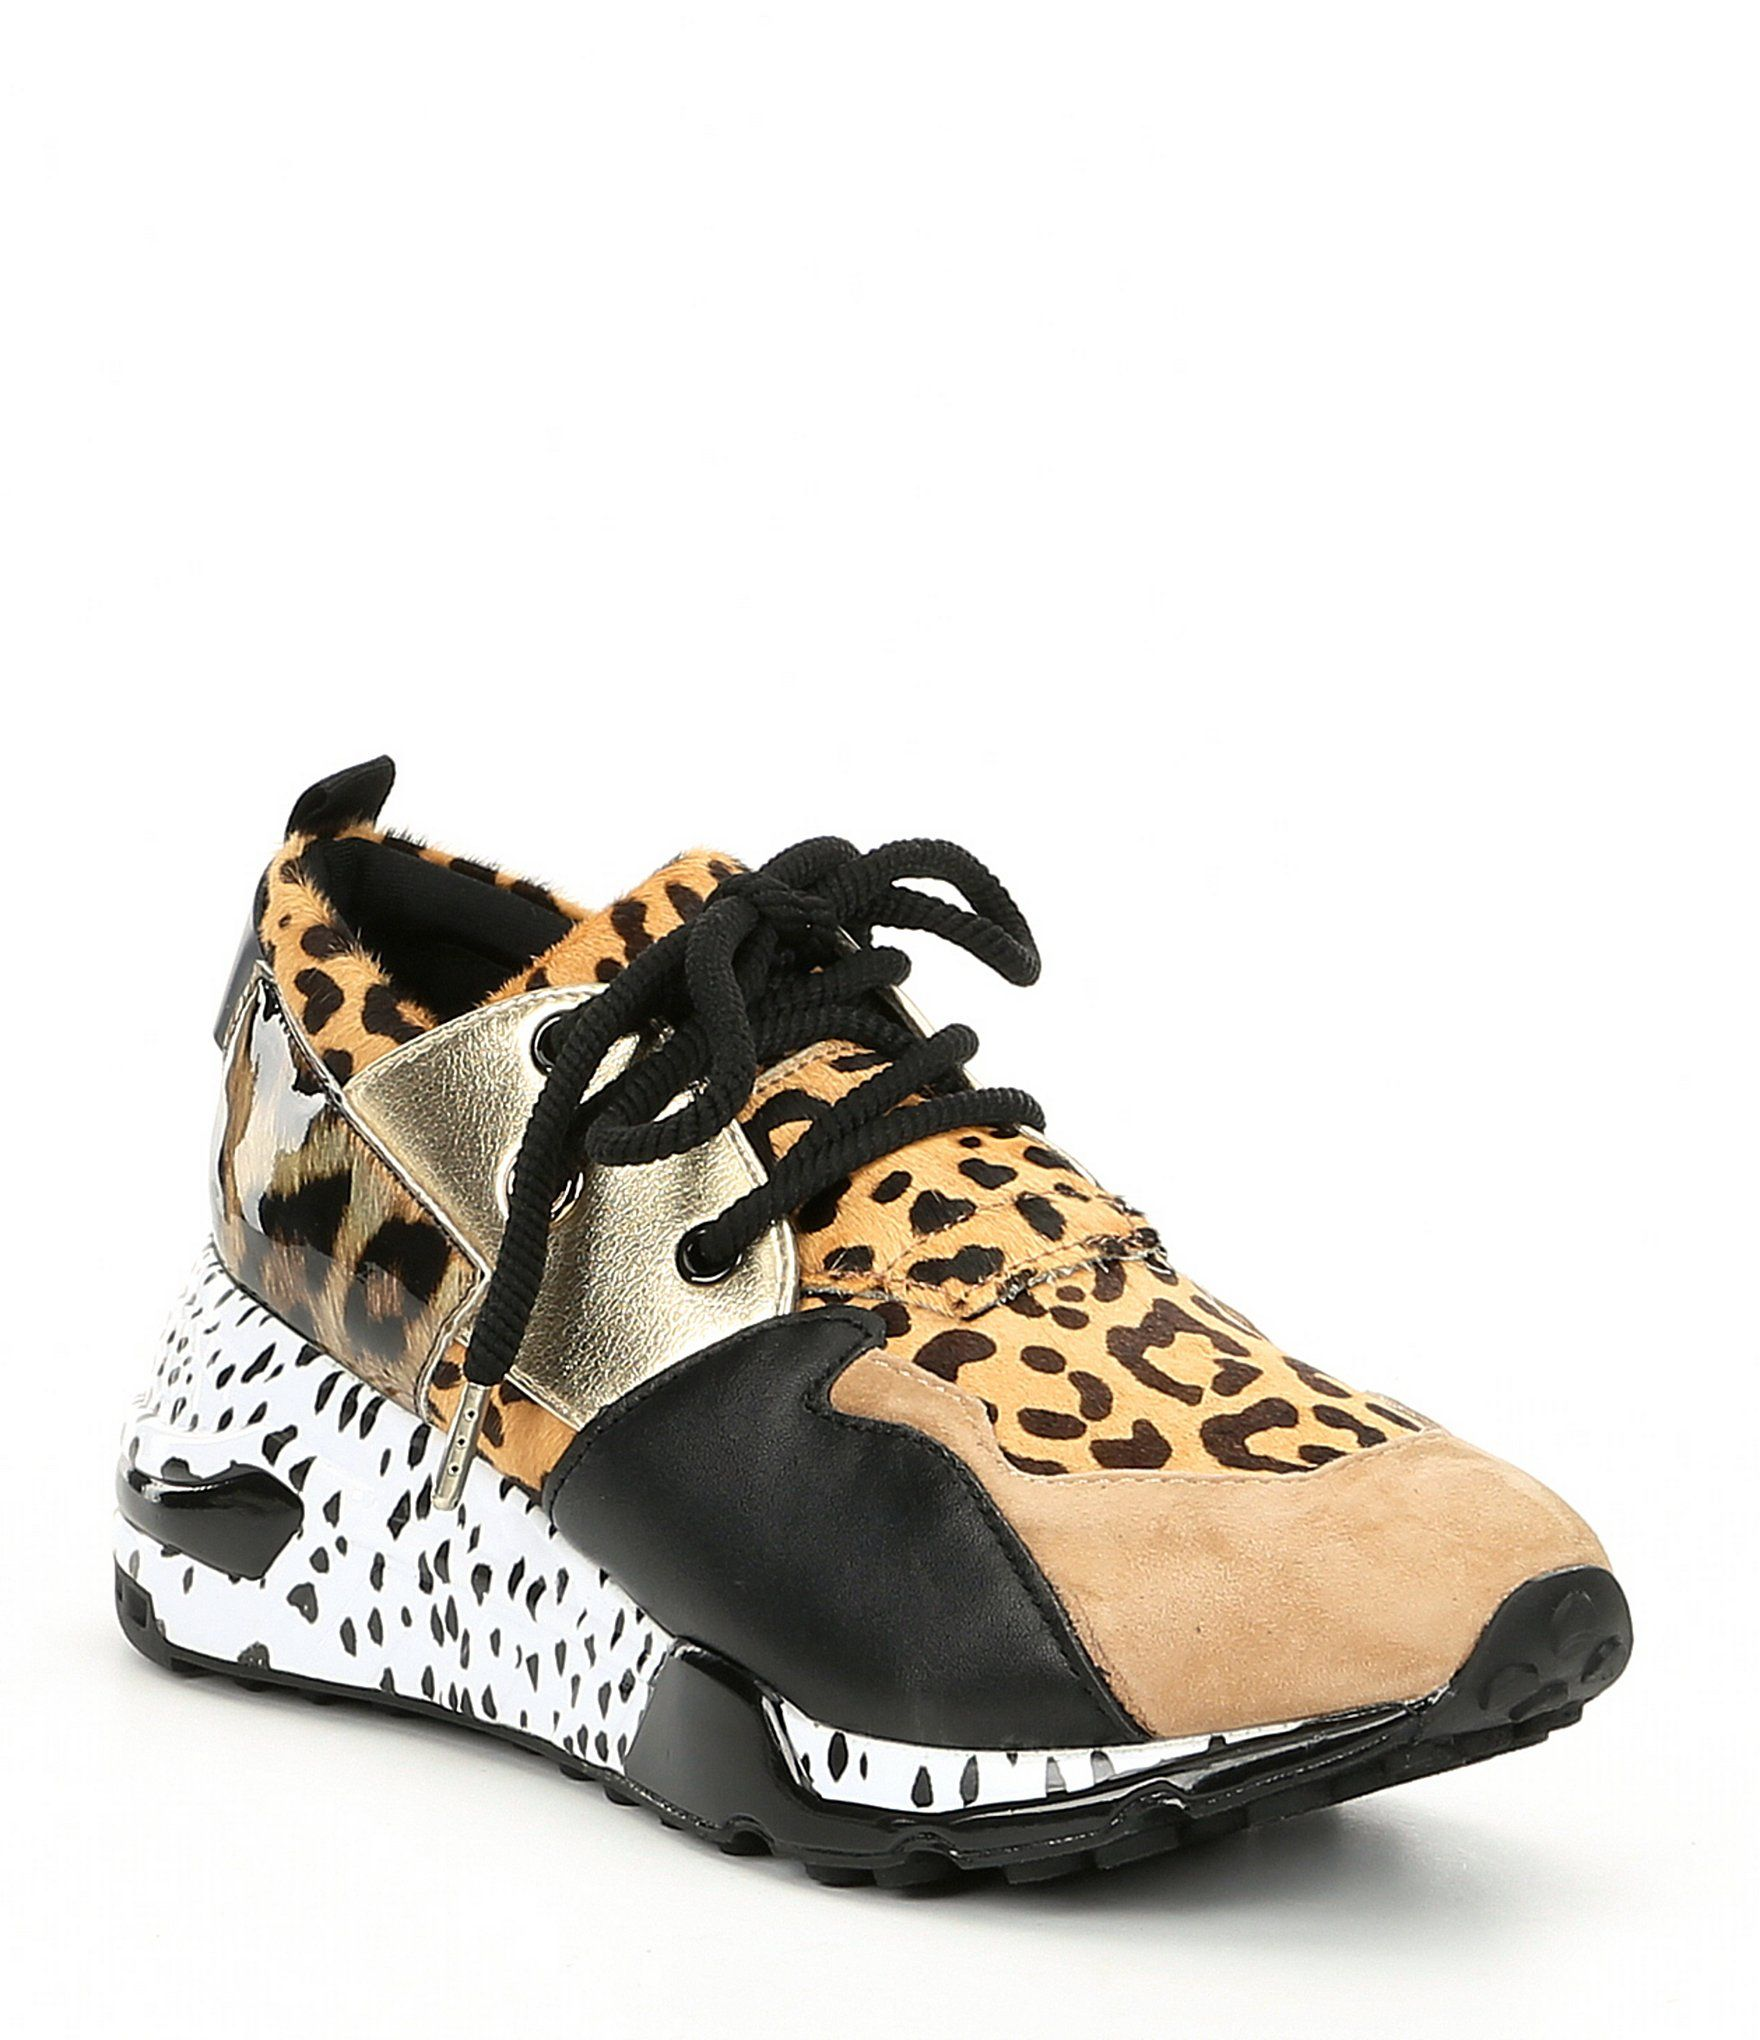 e319587afdd Shop for Steve Madden Cliff Leather and Suede Animal Print Sneakers at  Dillards.com. Visit Dillards.com to find clothing